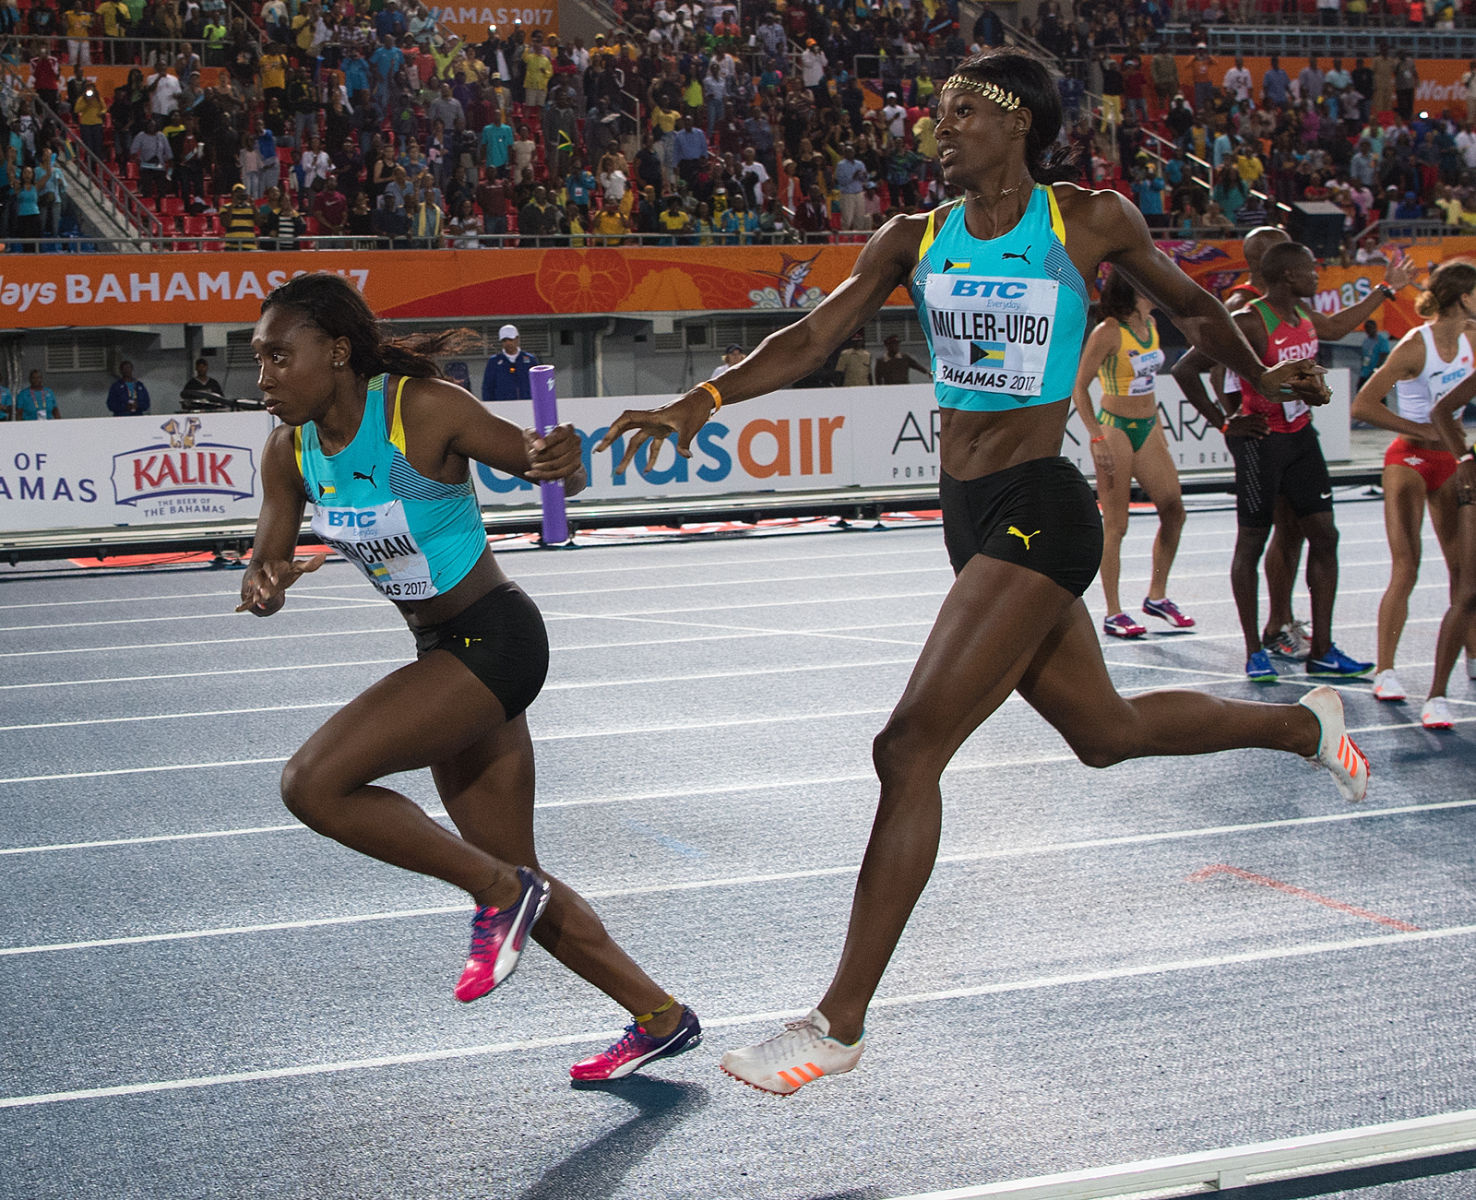 1r2017_bahamas_relays_day_2_4x400w_bah_miller____jeff_cohen_photo__1250.jpg